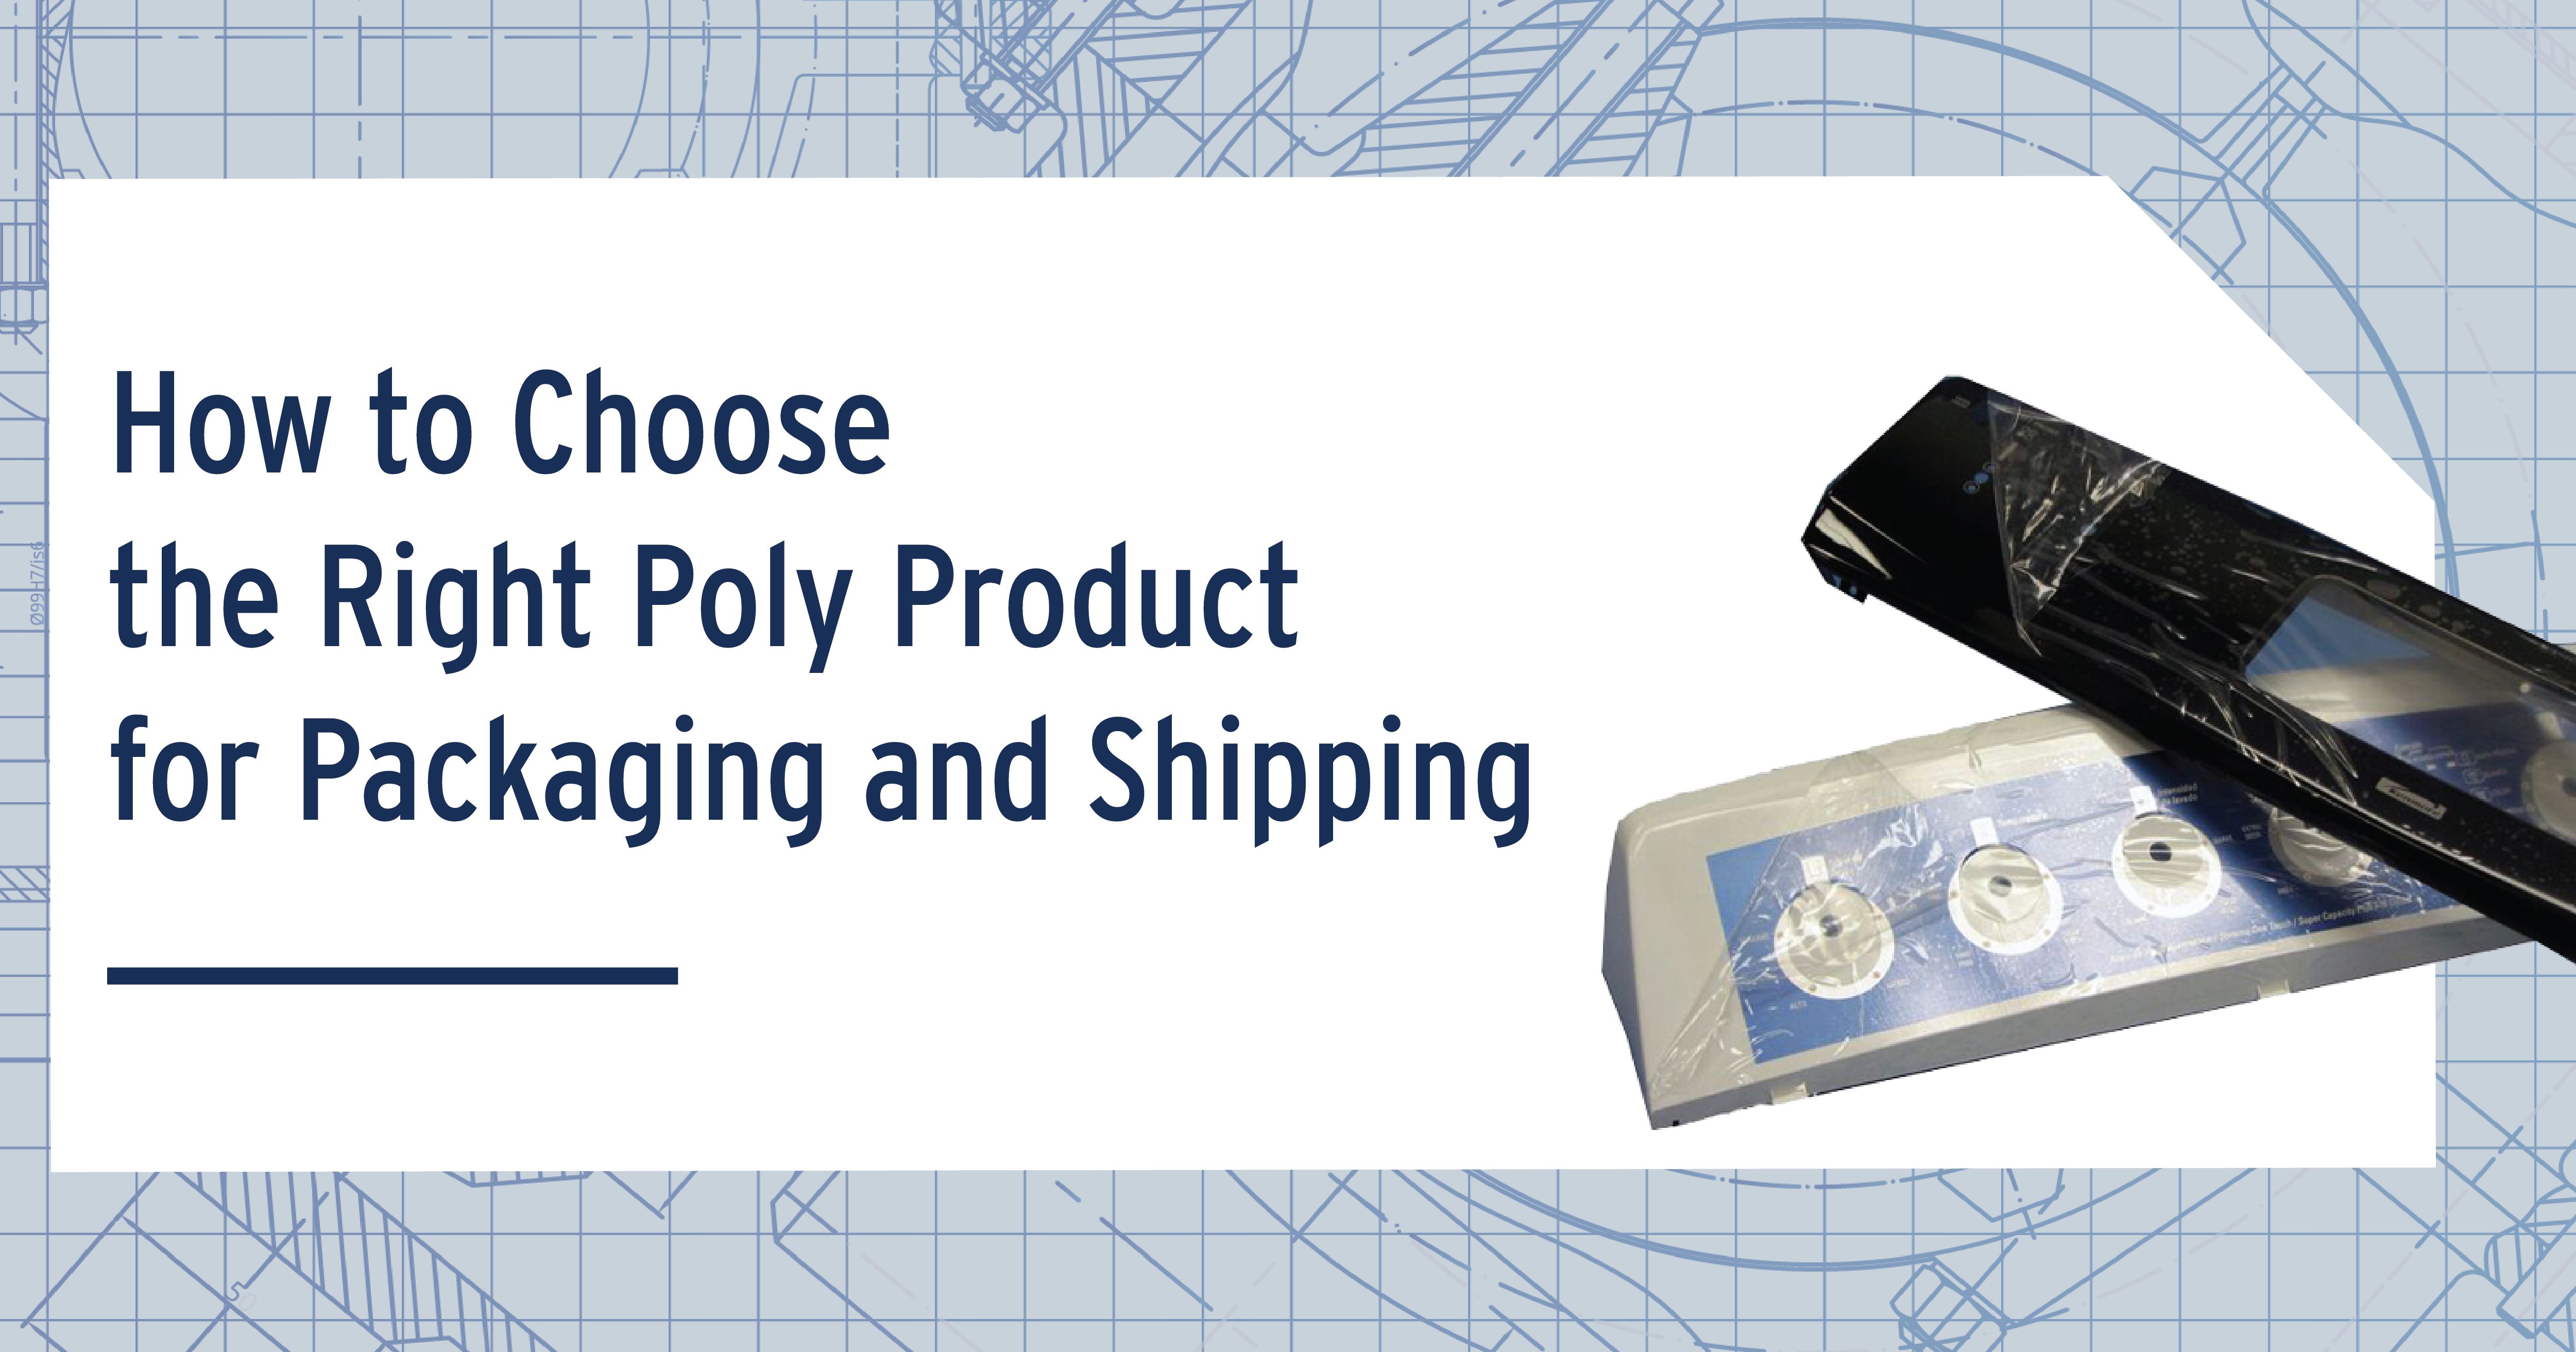 How to Choose the Right Poly Product for Packaging and Shipping